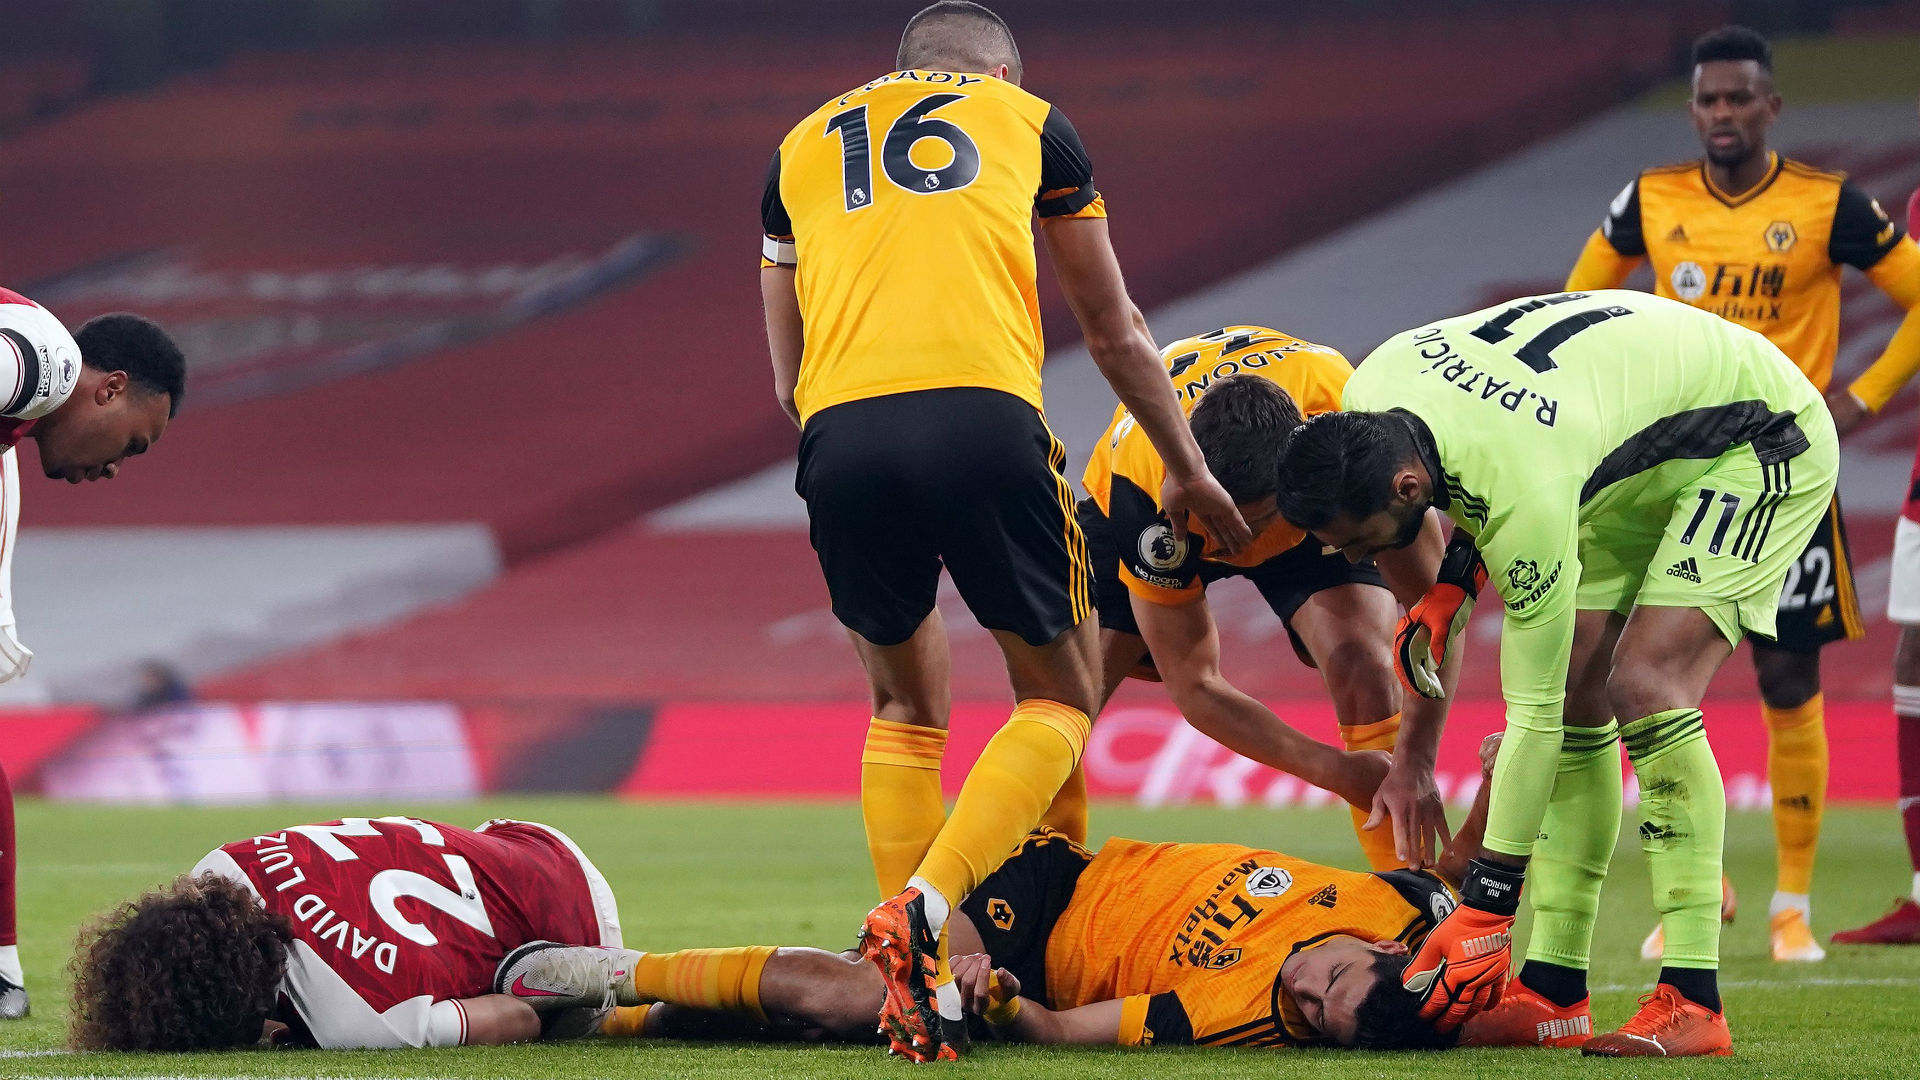 Jimenez's 'horrible' head clash distressed Wolves captain Coady